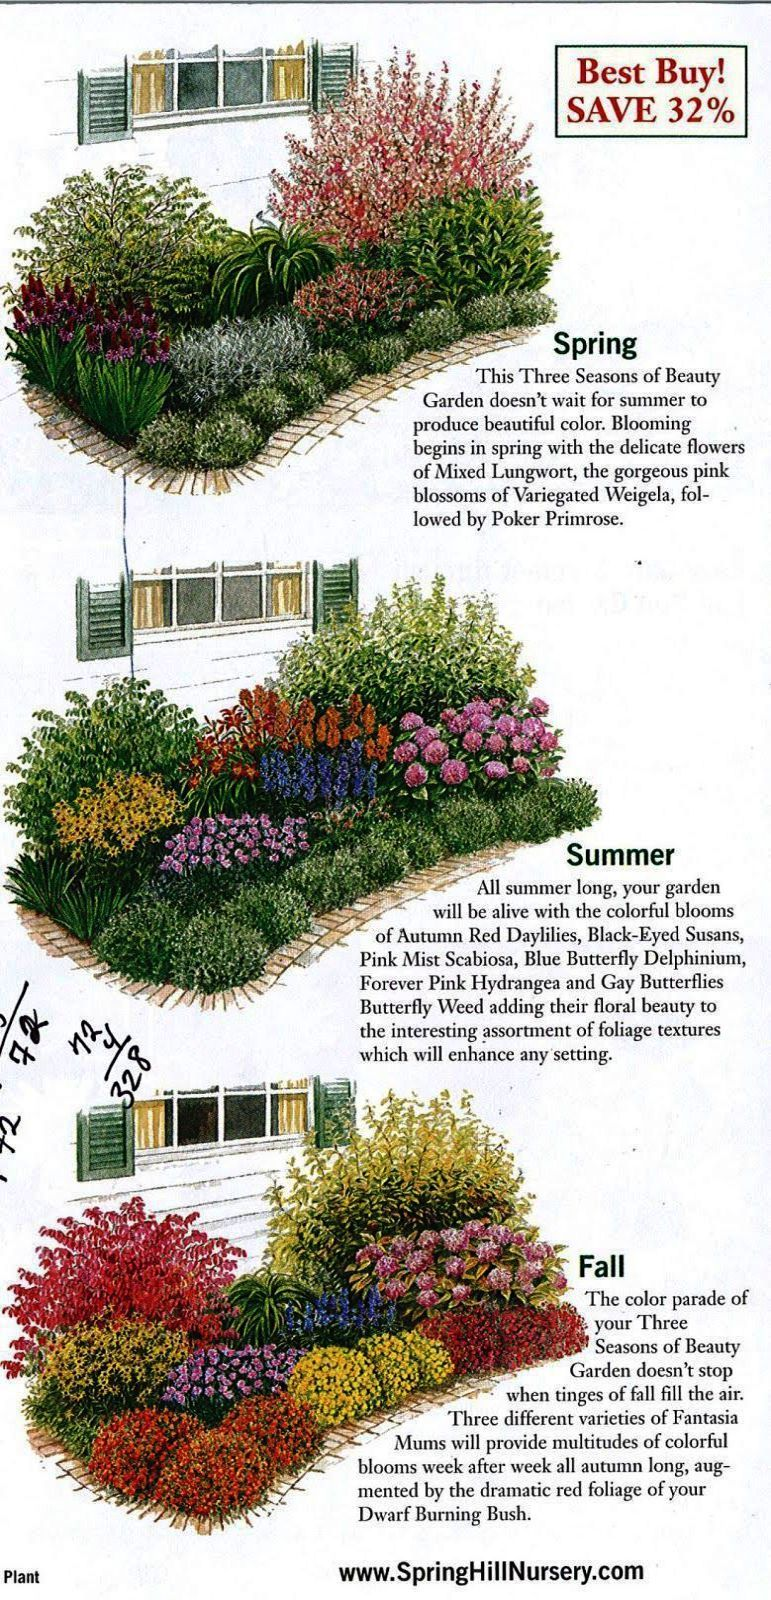 Landscape Gardening Supplies Newcastle Landscape Gardening Fife Lest Landscape Gardening Northampto In 2020 Flower Garden Plans Backyard Garden Design Garden Planning